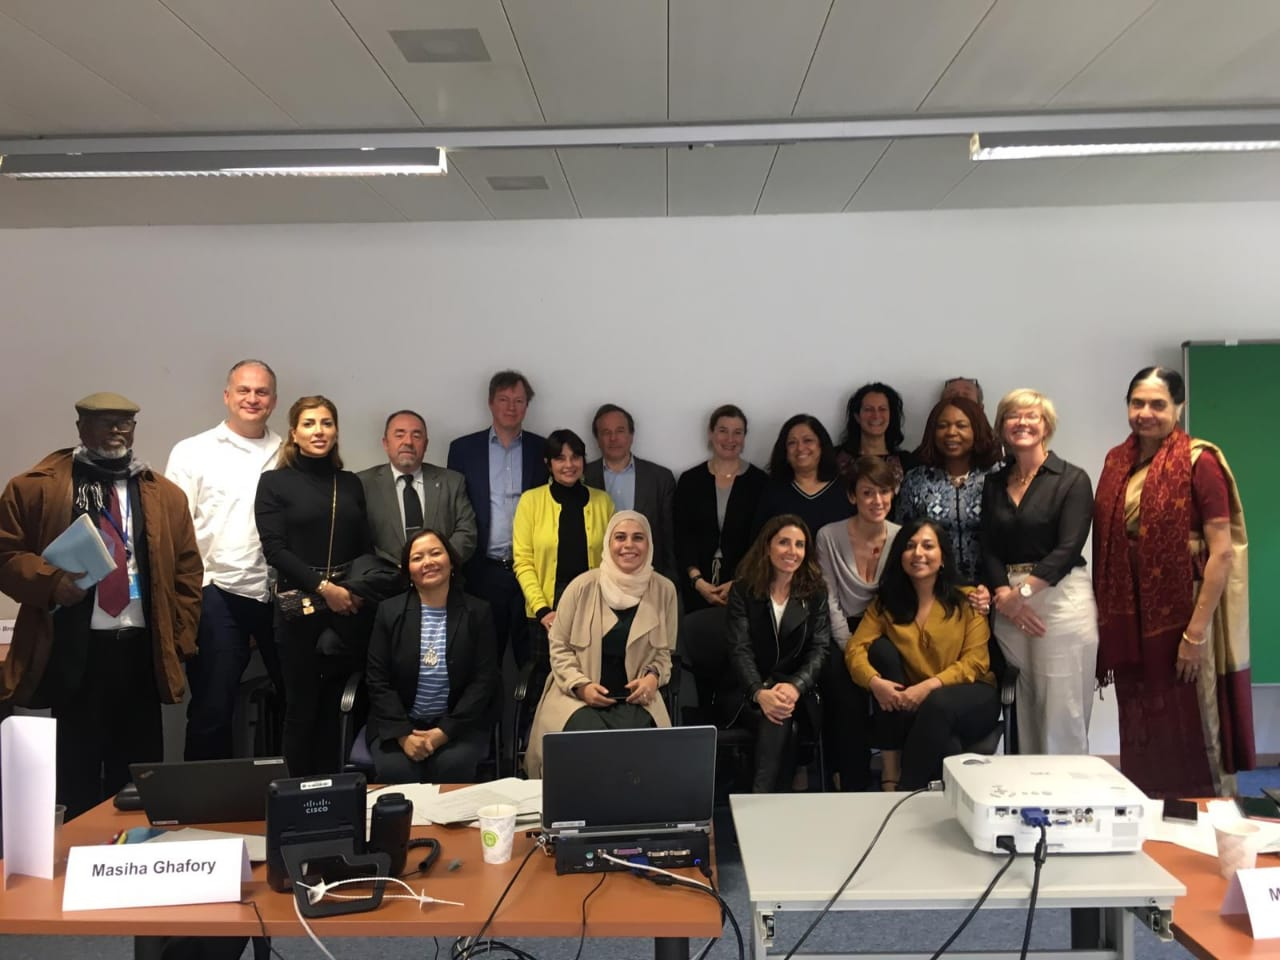 Euro-Med takes part in OHCHR international experts meeting on women's rights